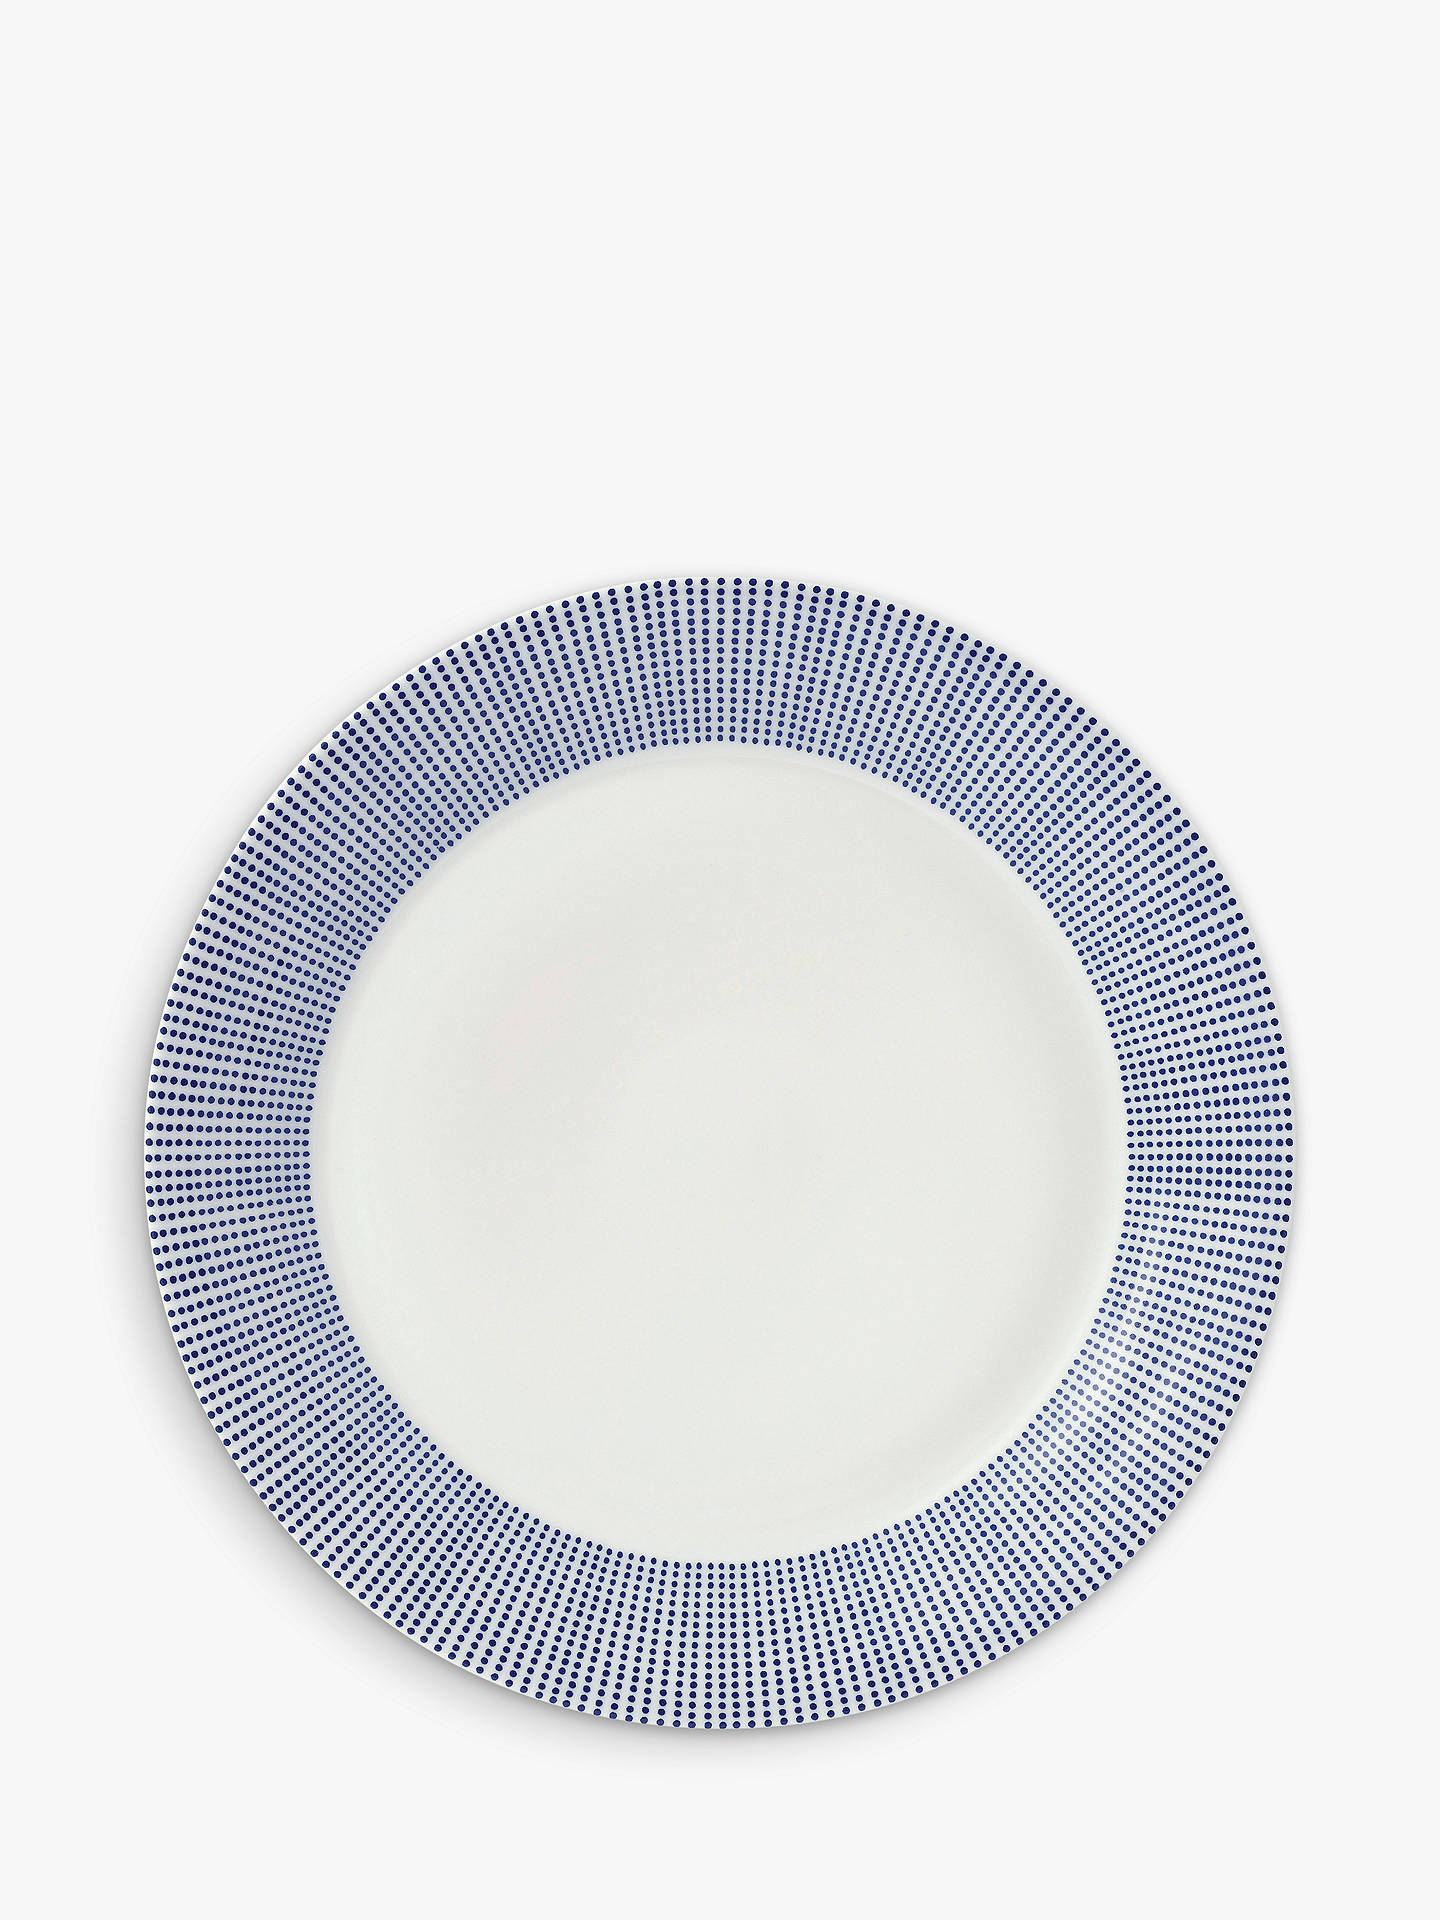 BuyRoyal Doulton Pacific Porcelain 28.5cm Dinner Plate, Blue Online at johnlewis.com